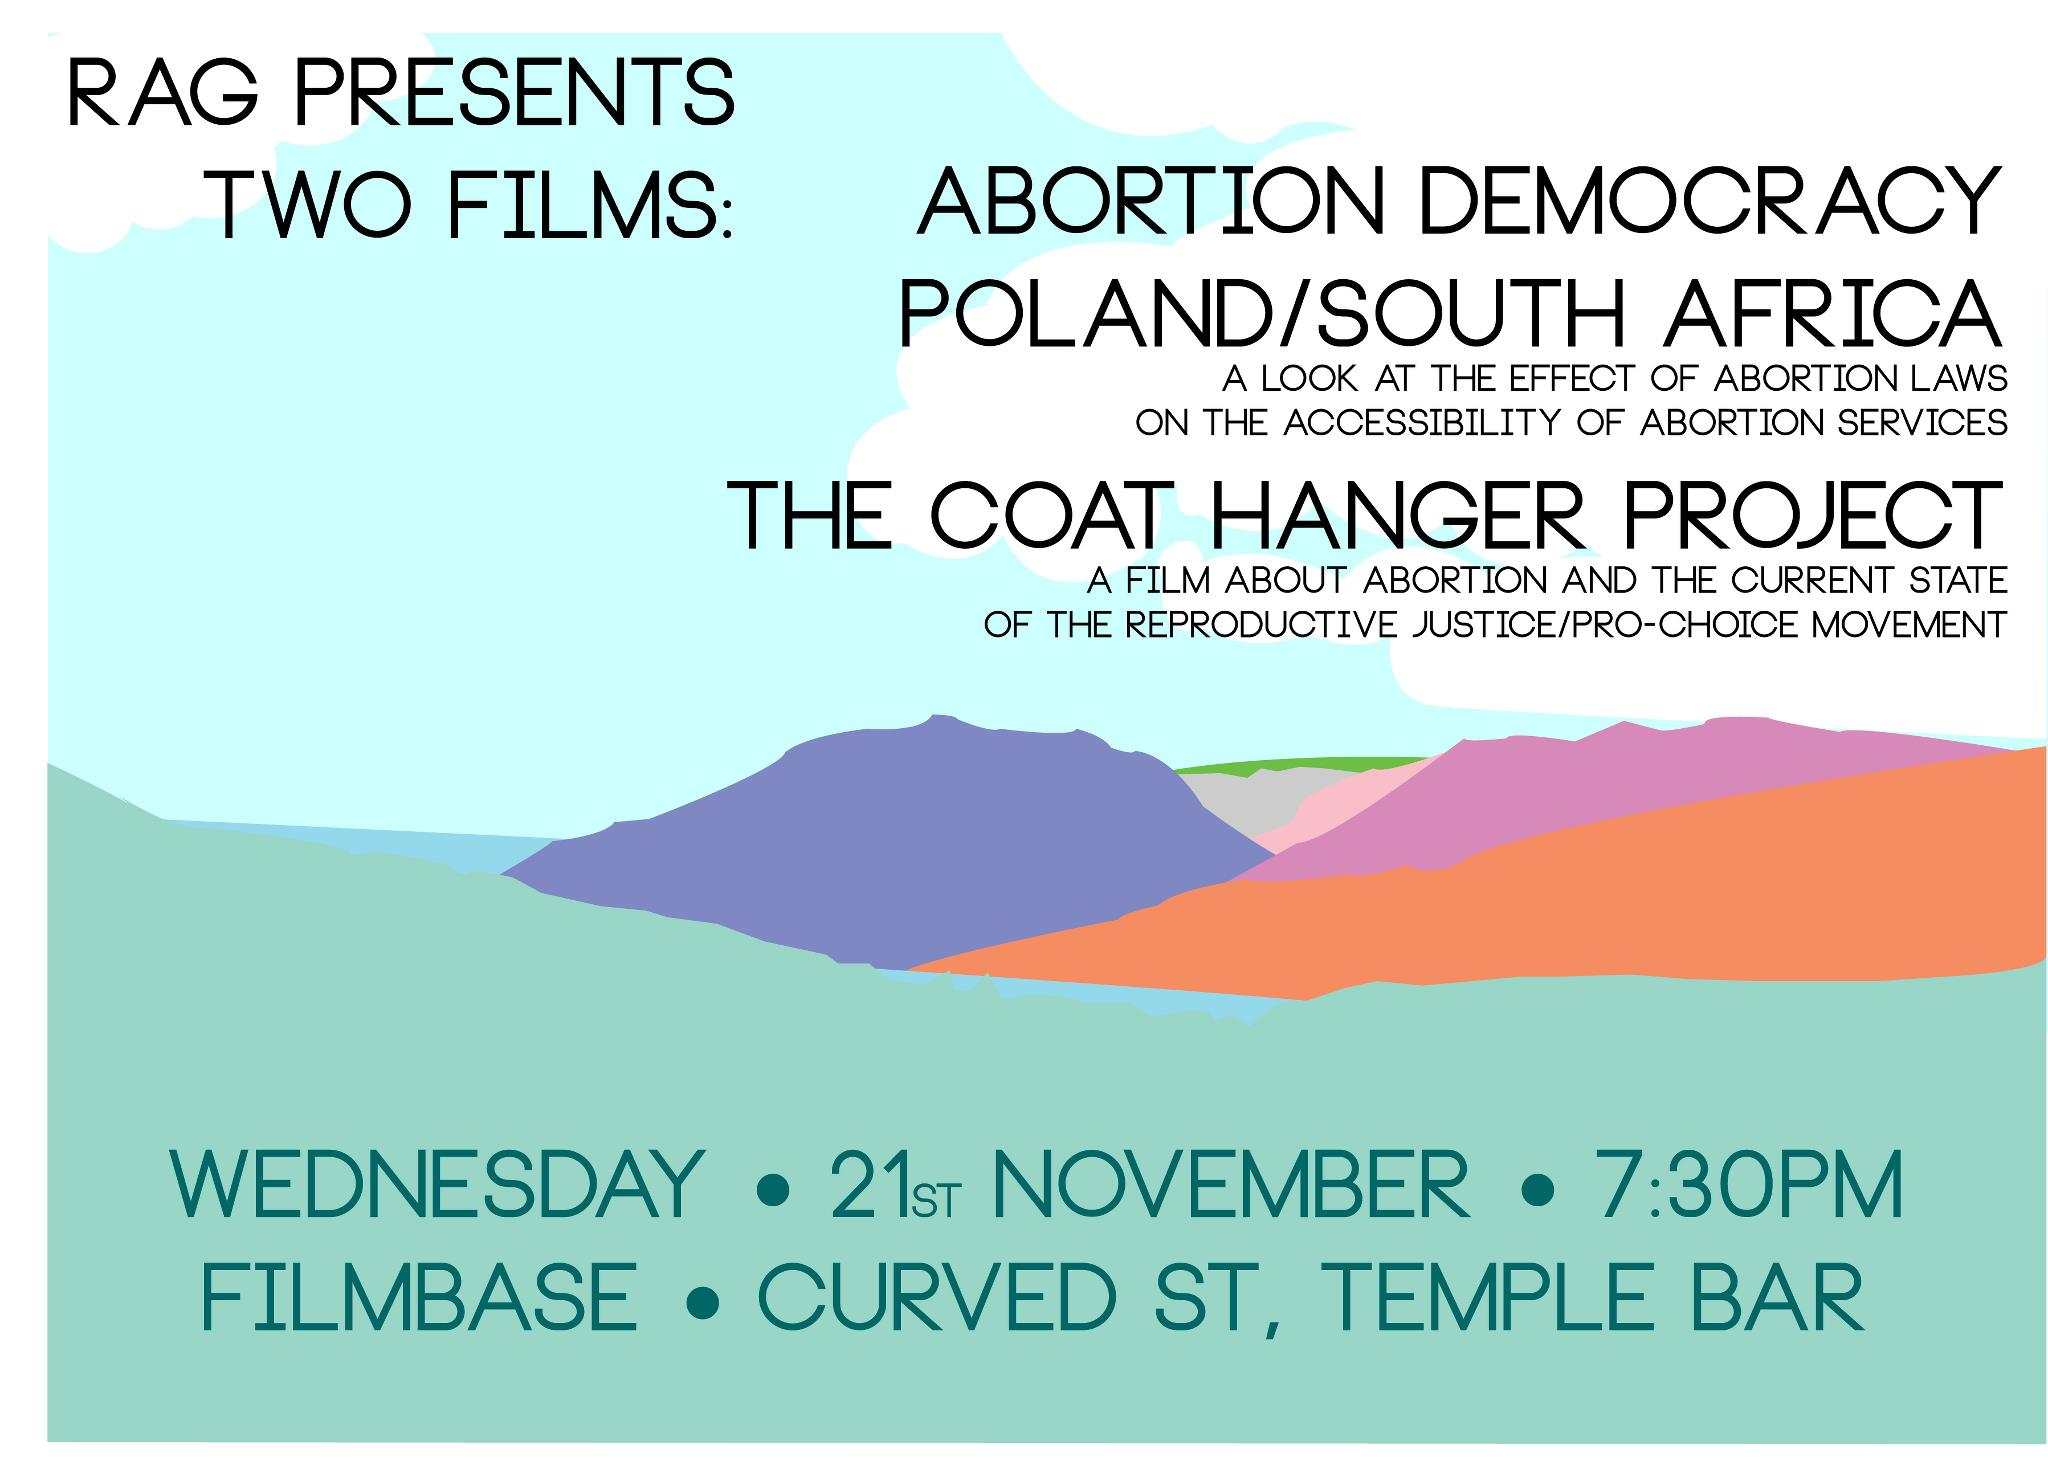 RAG Presents: Two documentary films concerning the legalisation of ...